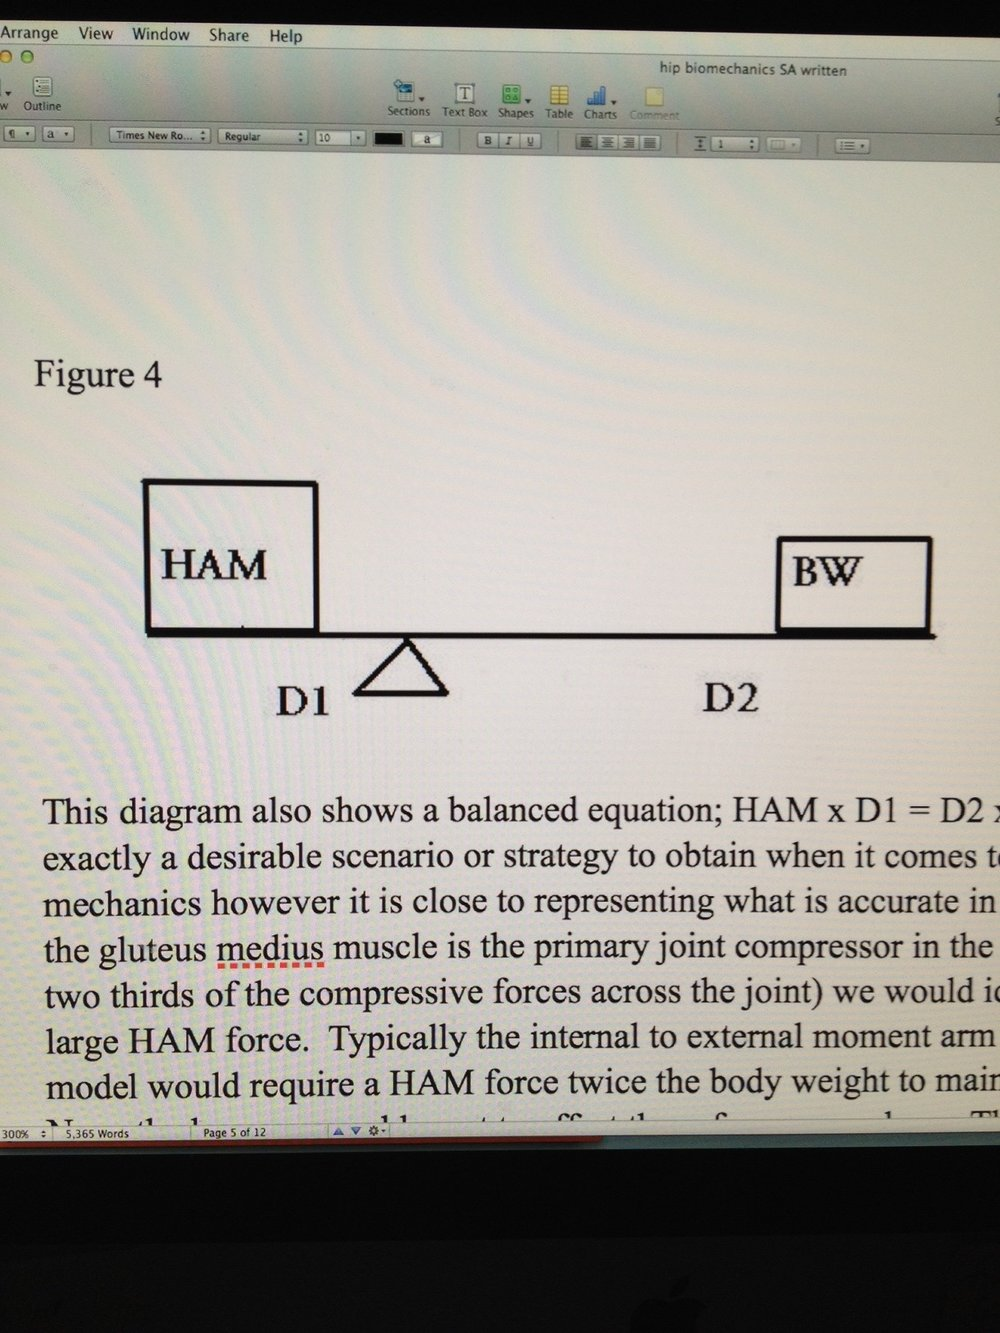 Hip Biomechanics: Part 4 of 6   This diagram (Figure 4) also shows a balanced equation; HAM x D1 = D2 x BW.  (where HAM=hip abductor/g.medius, D1 and D1 are lever arms, BW= body weight). This is not exactly a desirable scenario or strategy to obtain when it comes to joint compression mechanics however it is close to representing what is accurate in the human hip.  Since the gluteus medius muscle is the primary joint compressor in the frontal plane (it applies two thirds of the compressive forces across the joint) we would ideally never want such a large HAM force.  Typically the internal to external moment arm ration is 2:1 thus this model would require a HAM force twice the body weight to maintain a balanced system.  None the less, we would want to offset these forces somehow.  The only way to offset the large HAM would be to move the pivot point closer to the BW thereby increasing the D1 (increase D1 and you can reduce HAM and thus joint compression load).  In a physical person the pivot point, the joint axis of movement, is fixed so there is no real strategy to improve the situation without surgery.  These patients are unlucky and have no strategies to improve their high compression forces unless they loose weight; due to the fact of the 2:1 ratio, for every pound of body weight loss there is a 2 pound force decrease in the HAM.  Obesity is going to wreak havoc on our populations hips.  As mentioned previously, the model presented is very much incomplete.  Muscular forces surround the joint, movement occurs in every cardinal plane and there is acceleration of body segments which requires even greater muscular contraction isometrically, concentrically and eccentrically.  These factors all considered, it has been calculated that the total hip force crossing the joint can reach 3 times the body weight during walking.   This force is welcomed for maintaining joint stability but it can be an unwelcome force in a degenerative arthritic joint where the cartilage is less pliable and flexible.  The loading forces in an arthritic joint rhythmically pass into the acetabulum and femoral head as a result of the compromised cartilage necessitating increased bone mass and sclerosis within them.  This compromised arthritic joint will have some minor laxity due to the loss of the cartilage bulk and thinning of the acetabular labrum.  Thus the joint will have a slight increase in translatory/accessory movement and require greater muscular contraction to minimize/stabilize these movements.  These increased forces will be unwelcomed as they will generate more pain.  Additionally, the increased movements and degenerative debris within the joint will cause irritation and inflammation of the joint capsule and synovial lining causing further pain.  This entire scenario will cause the patient to investigate conscious and subconscious gait strategies to reduce the compression across the joint, in other words, they will essentially seek gait strategies that will reduce HAM (gluteus medius contraction) and increase the D1 internal moment arm.  These strategies will reduce the perpendicular joint compression forces that likely will be causing pain but if performed well they will be devastating to the normal frontal plane equilibrium since the gluteus medius muscle will be essentially shut down and inhibited.  Thus, the patient's gait strategy will give us the compensated Trendelenburg gait pattern.  The uncompensated Trendelenburg gait will show a dropping of the contralateral hemipelvis on the swing side during gait, this is the pathologic gait pattern we see when the patient has not implemented strategies to reduce their pain but it is more likely seen when the patient is not yet at the painful stage in which they need to implore strategies to avoid the movement.  Comparatively, compensated Trendelenburg gait pattern will display a lifting of the contralateral hemipelvis.  This strategy is not implemented by activation of the gluteus medius on the side in question, rather it is a compensation move performed by shifting the patient's body weight over the pathologic hip thus causing the hip that is dropping to be passively raised into a more normal range in the frontal plane.  This passive frontal plane move by the patient over the painful hip is at first difficult to embrace logically as one does not expect to want to load their body weight further over top of the painful hip.  However, upon investigation of the mathematical equation one will see that the shift of body weight (BW) over the affected hip will significantly reduce the D2 external moment arm, significantly increase the D1 internal moment arm and thus deliver us the desirable significant reduction in the HAM gluteus medius compressive contraction across the painful hip.  Thus, the pathologic compensation gait pattern in the frontal plane will markedly reduce the patient's hip pain.  From a kinetic chain perspective however, there is always a price to pay.  This implemented strategy of ipsilateral trunk lateral flexion is performed by utilization of the thoracolumbar paraspinals and quadratus lumborum on the painful hip side. The resulting abnormal muscular and joint strategies now imparted on the lumbar spine and pelvis interface frequently begins a cascade of muscular and joint pain in the low back and abnormal loading of the lumbar discs.  The strategy also begins an unwelcome increased loading of the non-painful hip as the patient is loading the hip greater than normal due to the height from which the hip and pelvis drop from the compensated Trendelenburg position.  In other words, by protecting the painful arthritic hip from increased loads we sacrifice the healthy hip for a period of years until the forced finally amount to enough damage that pain begins here as well.  Fortunately, we have the ability to mediate some of these dramatic movements and forces by using logic and a cane.  By placing a walking cane in the hand opposite to the painful hip and by asking the patient to contact the cane with the ground when they initiate contact with the painful limb we can offset some of the excessive compensations and forces.  When the cane contacts the ground the patient is to apply a mild to moderate downward force through the cane via arm contraction.  This downward force will afford us a resultant upward ground reactive force through the cane delivering us a lifting effect on the dropped hemipelvis side (dipping hip side/non-painful side).  This strategy will allow us a more passive shifting of the body weight (BW) over the painful hip side without having to lift or pull the body weight (BW) over the painful hip with the hip abductor muscles (HAM).  These passive forces (which can be more than  half of those normally needed to be generated by the HAM) will help to markedly reduce the muscular forces needed by the spinal and quadratus muscles while also rendering the desired marked reduction in HAM compressive forces across the painful joint.  It is interesting to note that the further the cane is placed from the body, the longer its moment arm and thus the less downward force necessary by the patient's arm.  It is quite possible, that if used correctly, a cane can almost completely offset the required contralateral HAM force.  Another passive strategy would be to carry objects (purses, books, grocery bags, etc) on the affected hip side.  This action will also balance the teeter-totter  in favor and thus reduce the muscular forced necessary to perform the same task.  It must be noted however that increasing any body load is undesirable and should be avoided not so much because of issues pertaining to the painful degenerative hip but because of the increased load on the healthier hip.   Shawn and Ivo, The Gait Guys   All materials are copywrited. Don't rip our stuff off ! Just ask nicely if you can link or reference. Play nice, play fair.